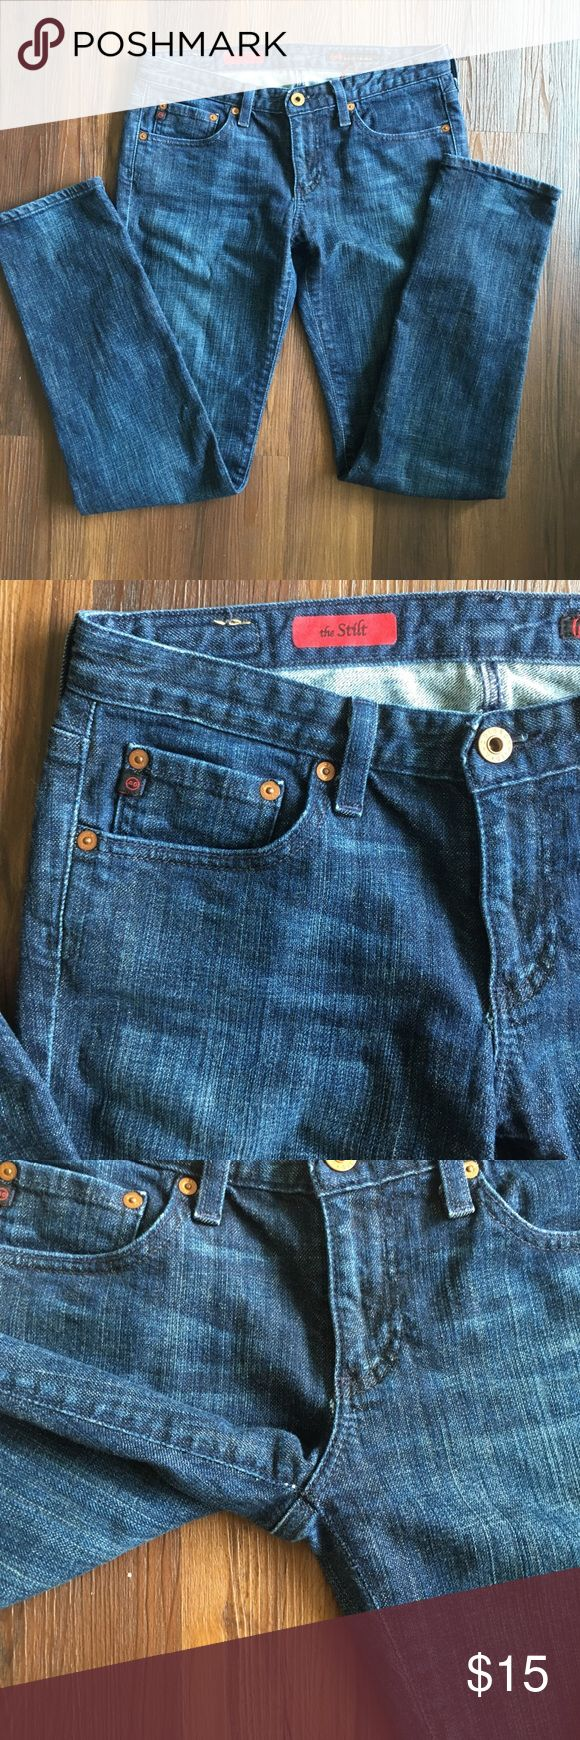 🔥Sale 🔥AG jeans the Stilt Very classy AG jeans : deep blue,  looks like new and hardware have not been scratched . Size 28R, inseam 30 inches, rise 7.5 inches. Made in U.S Bundle 2 items  and get 15% off Ag Adriano Goldschmied Jeans Straight Leg